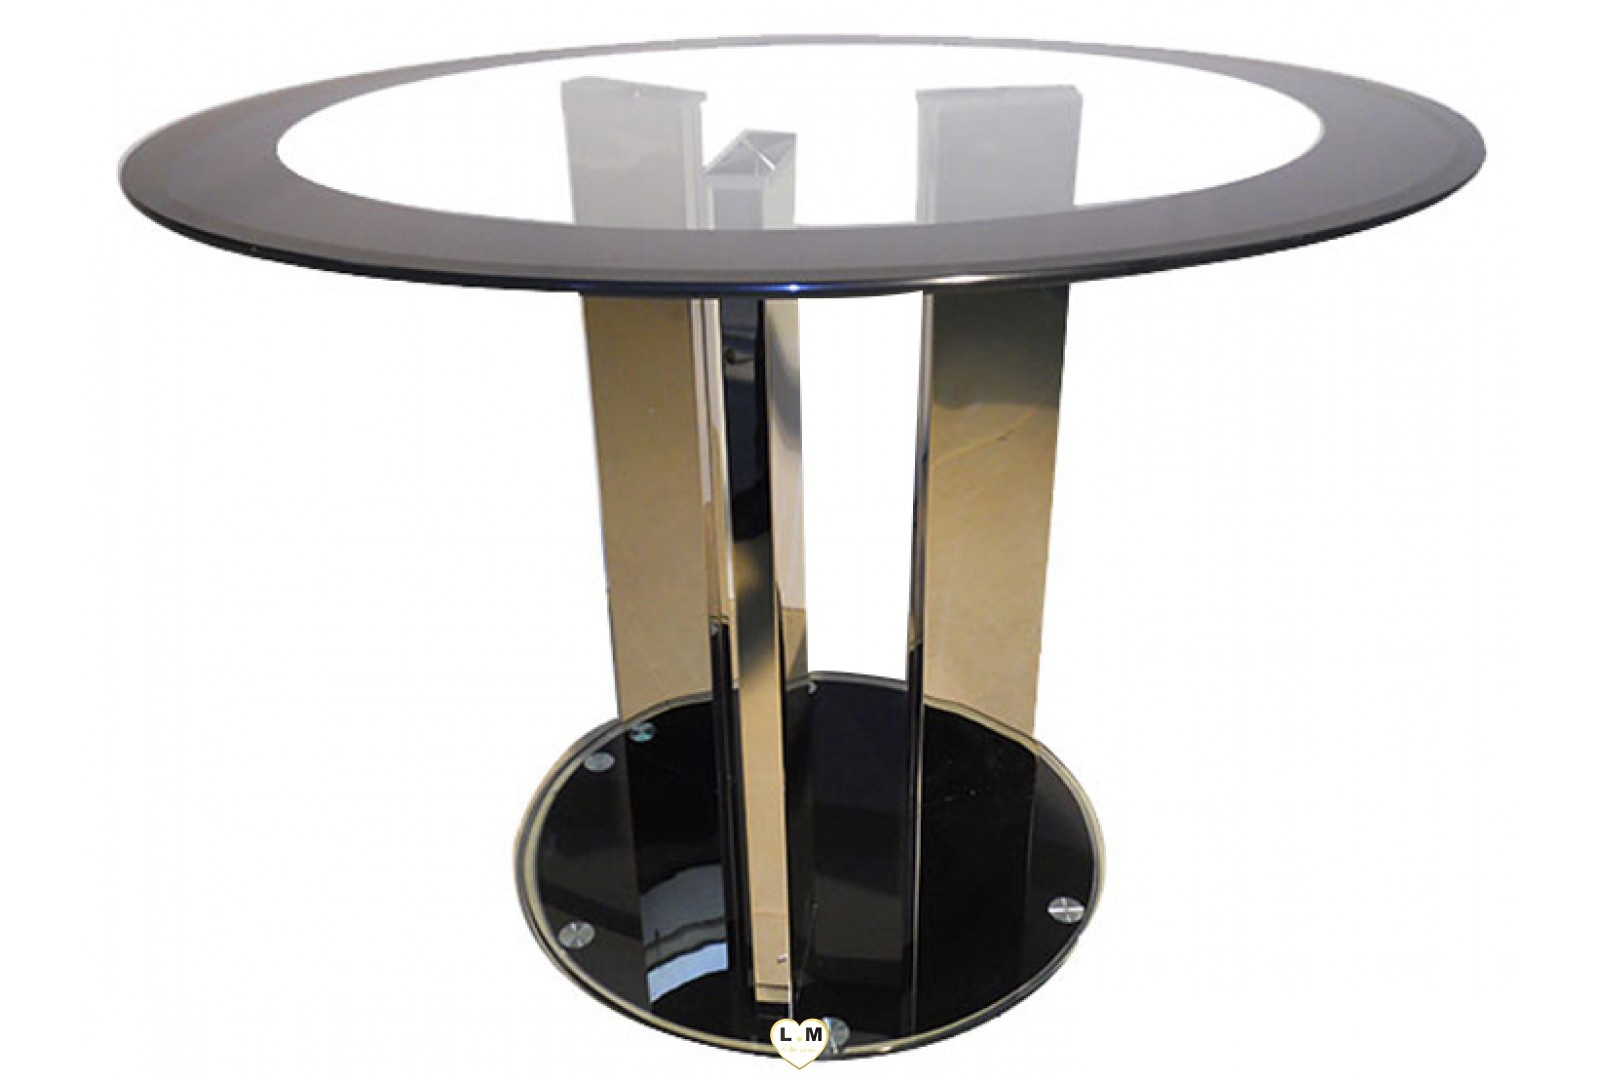 t887 table salle a manger ronde verre transparent. Black Bedroom Furniture Sets. Home Design Ideas